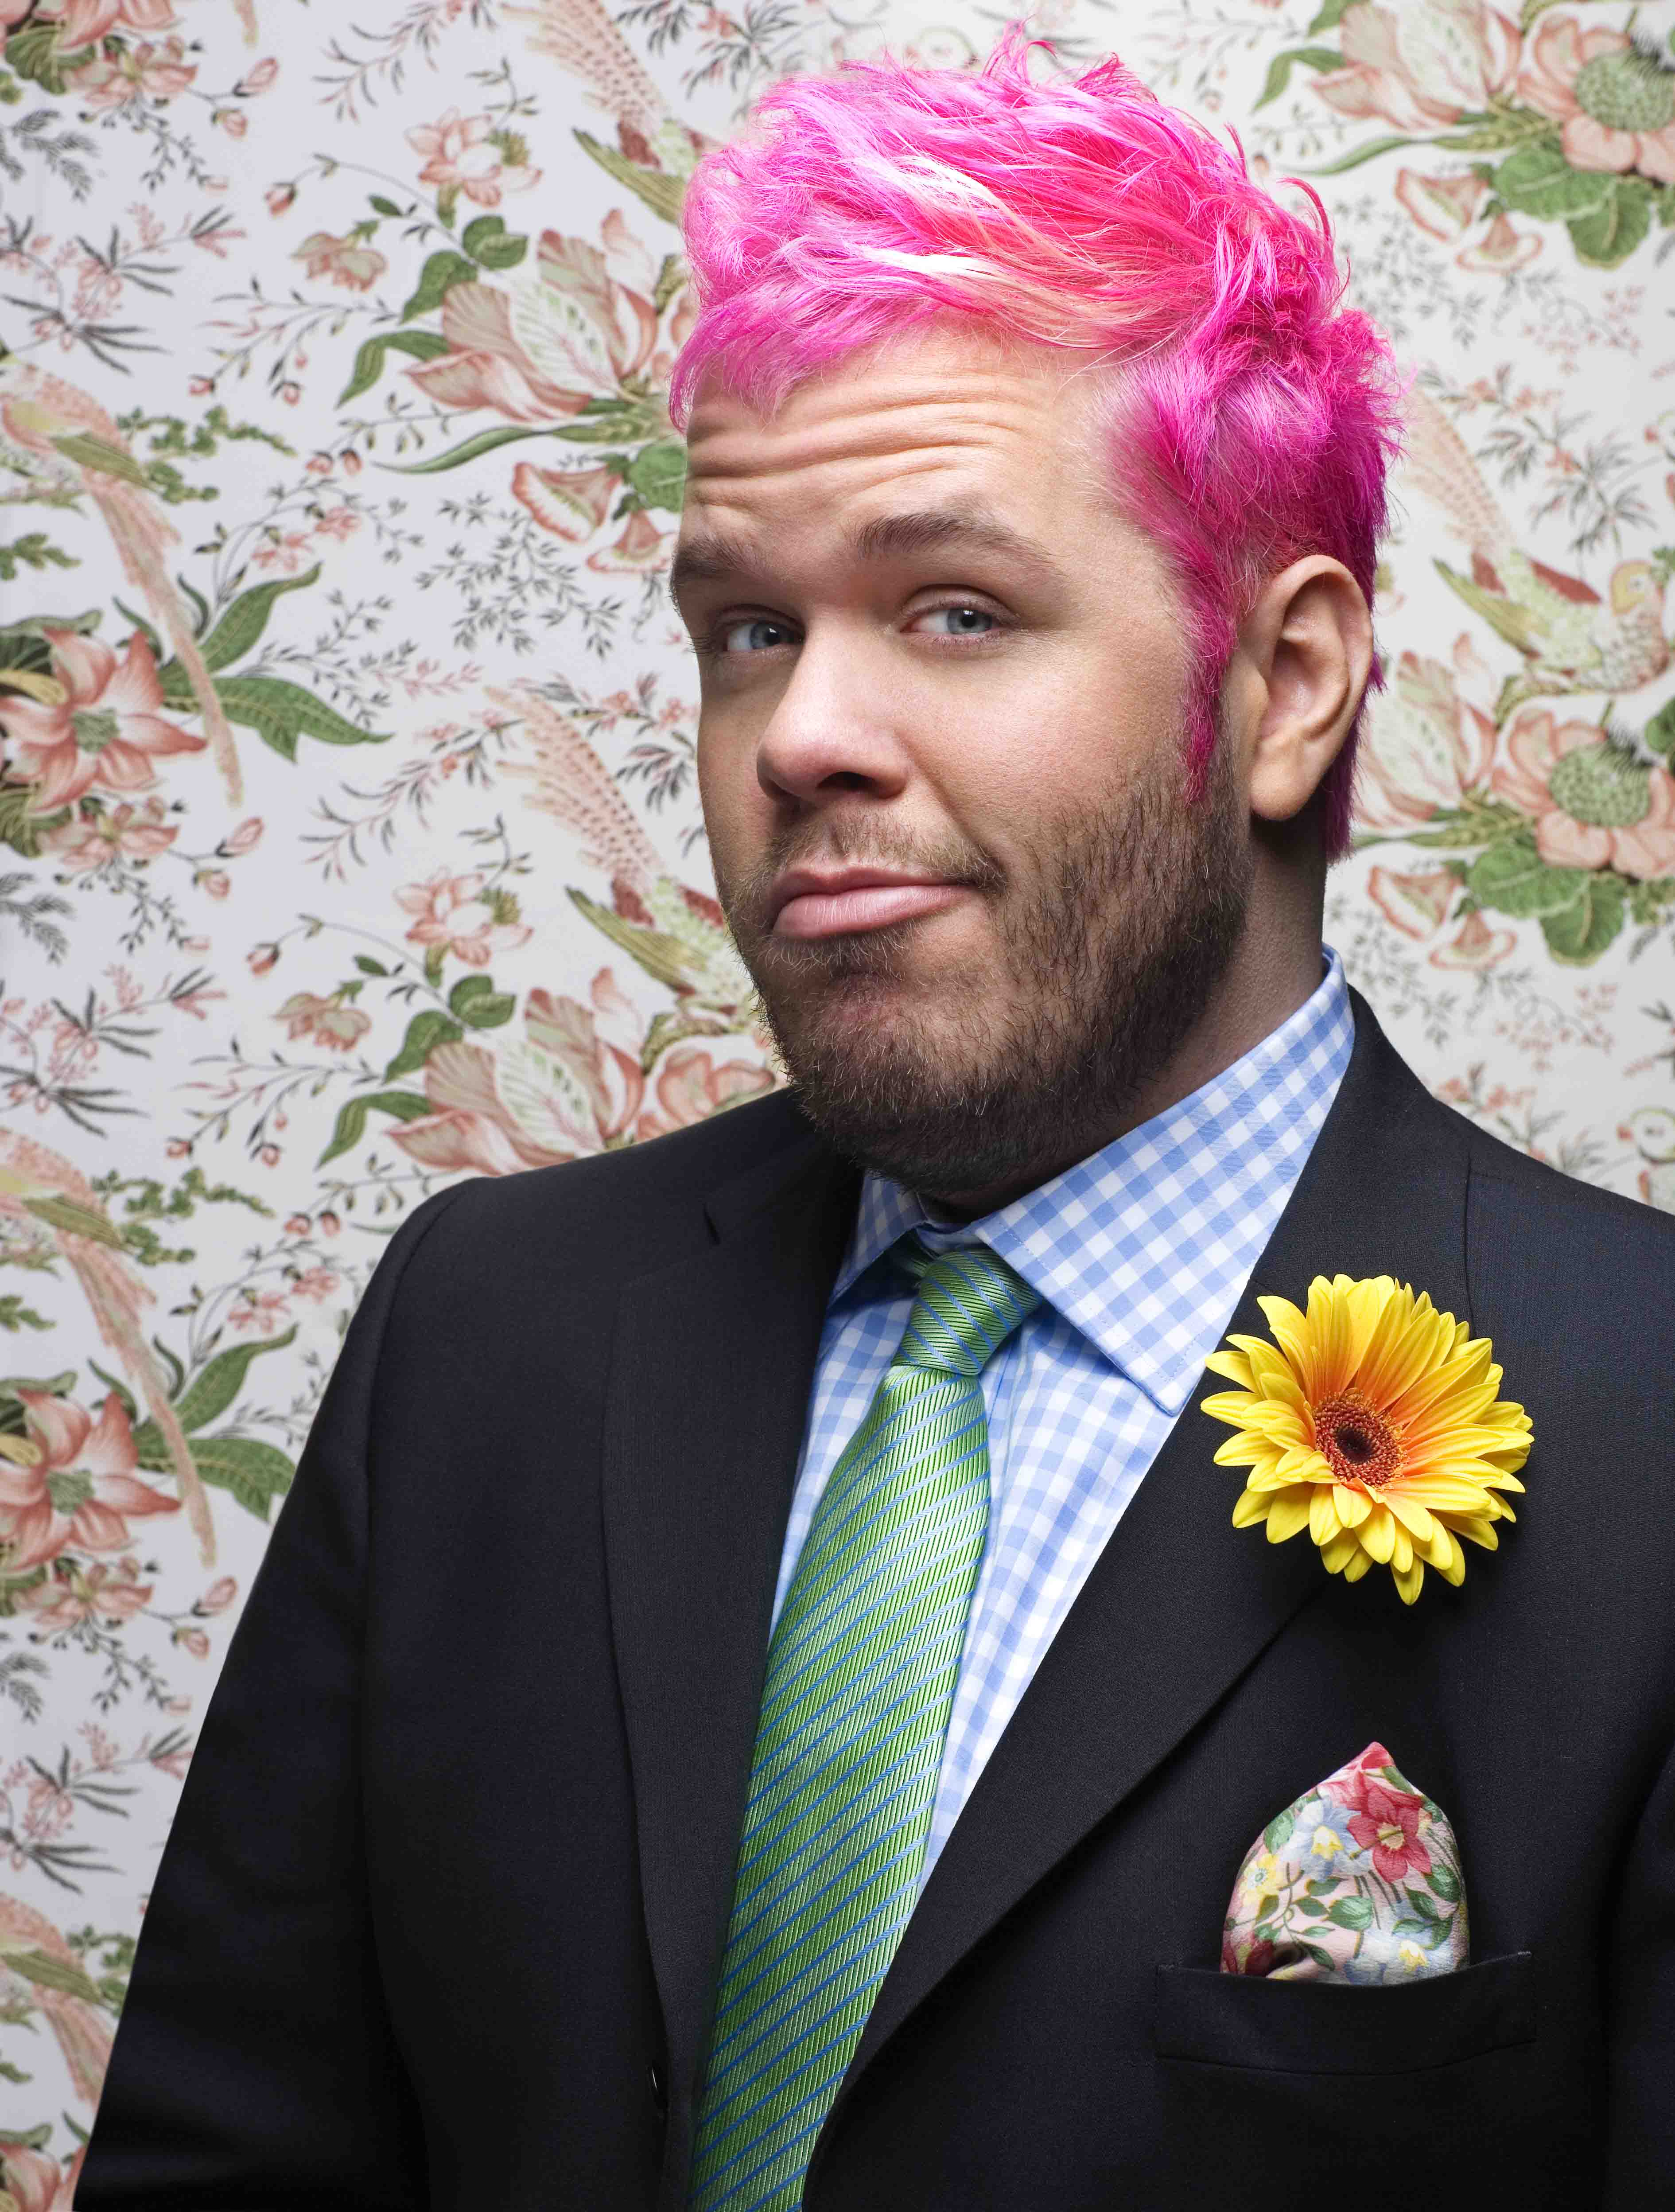 gay blog: the boy with pink hair, children's book, gay news, gay book